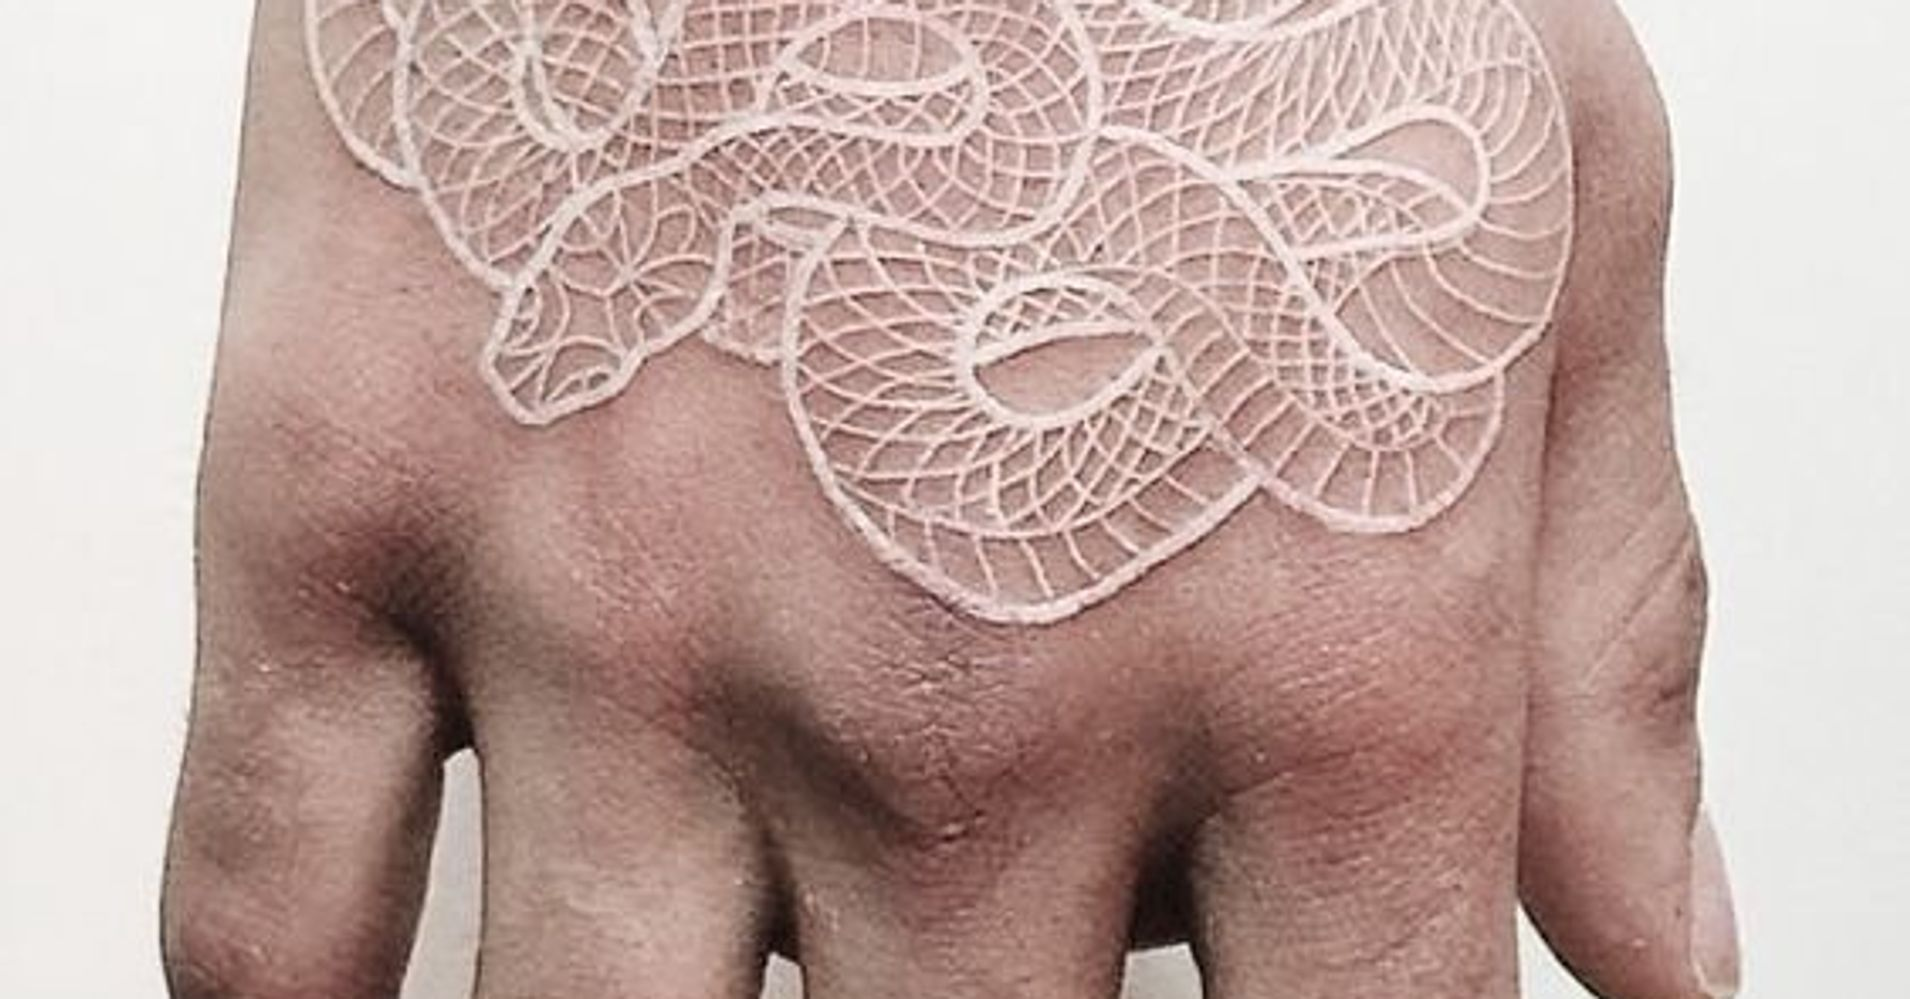 White I N K Tattoos: 24 White Ink Tattoos That No One In The Office Will Even